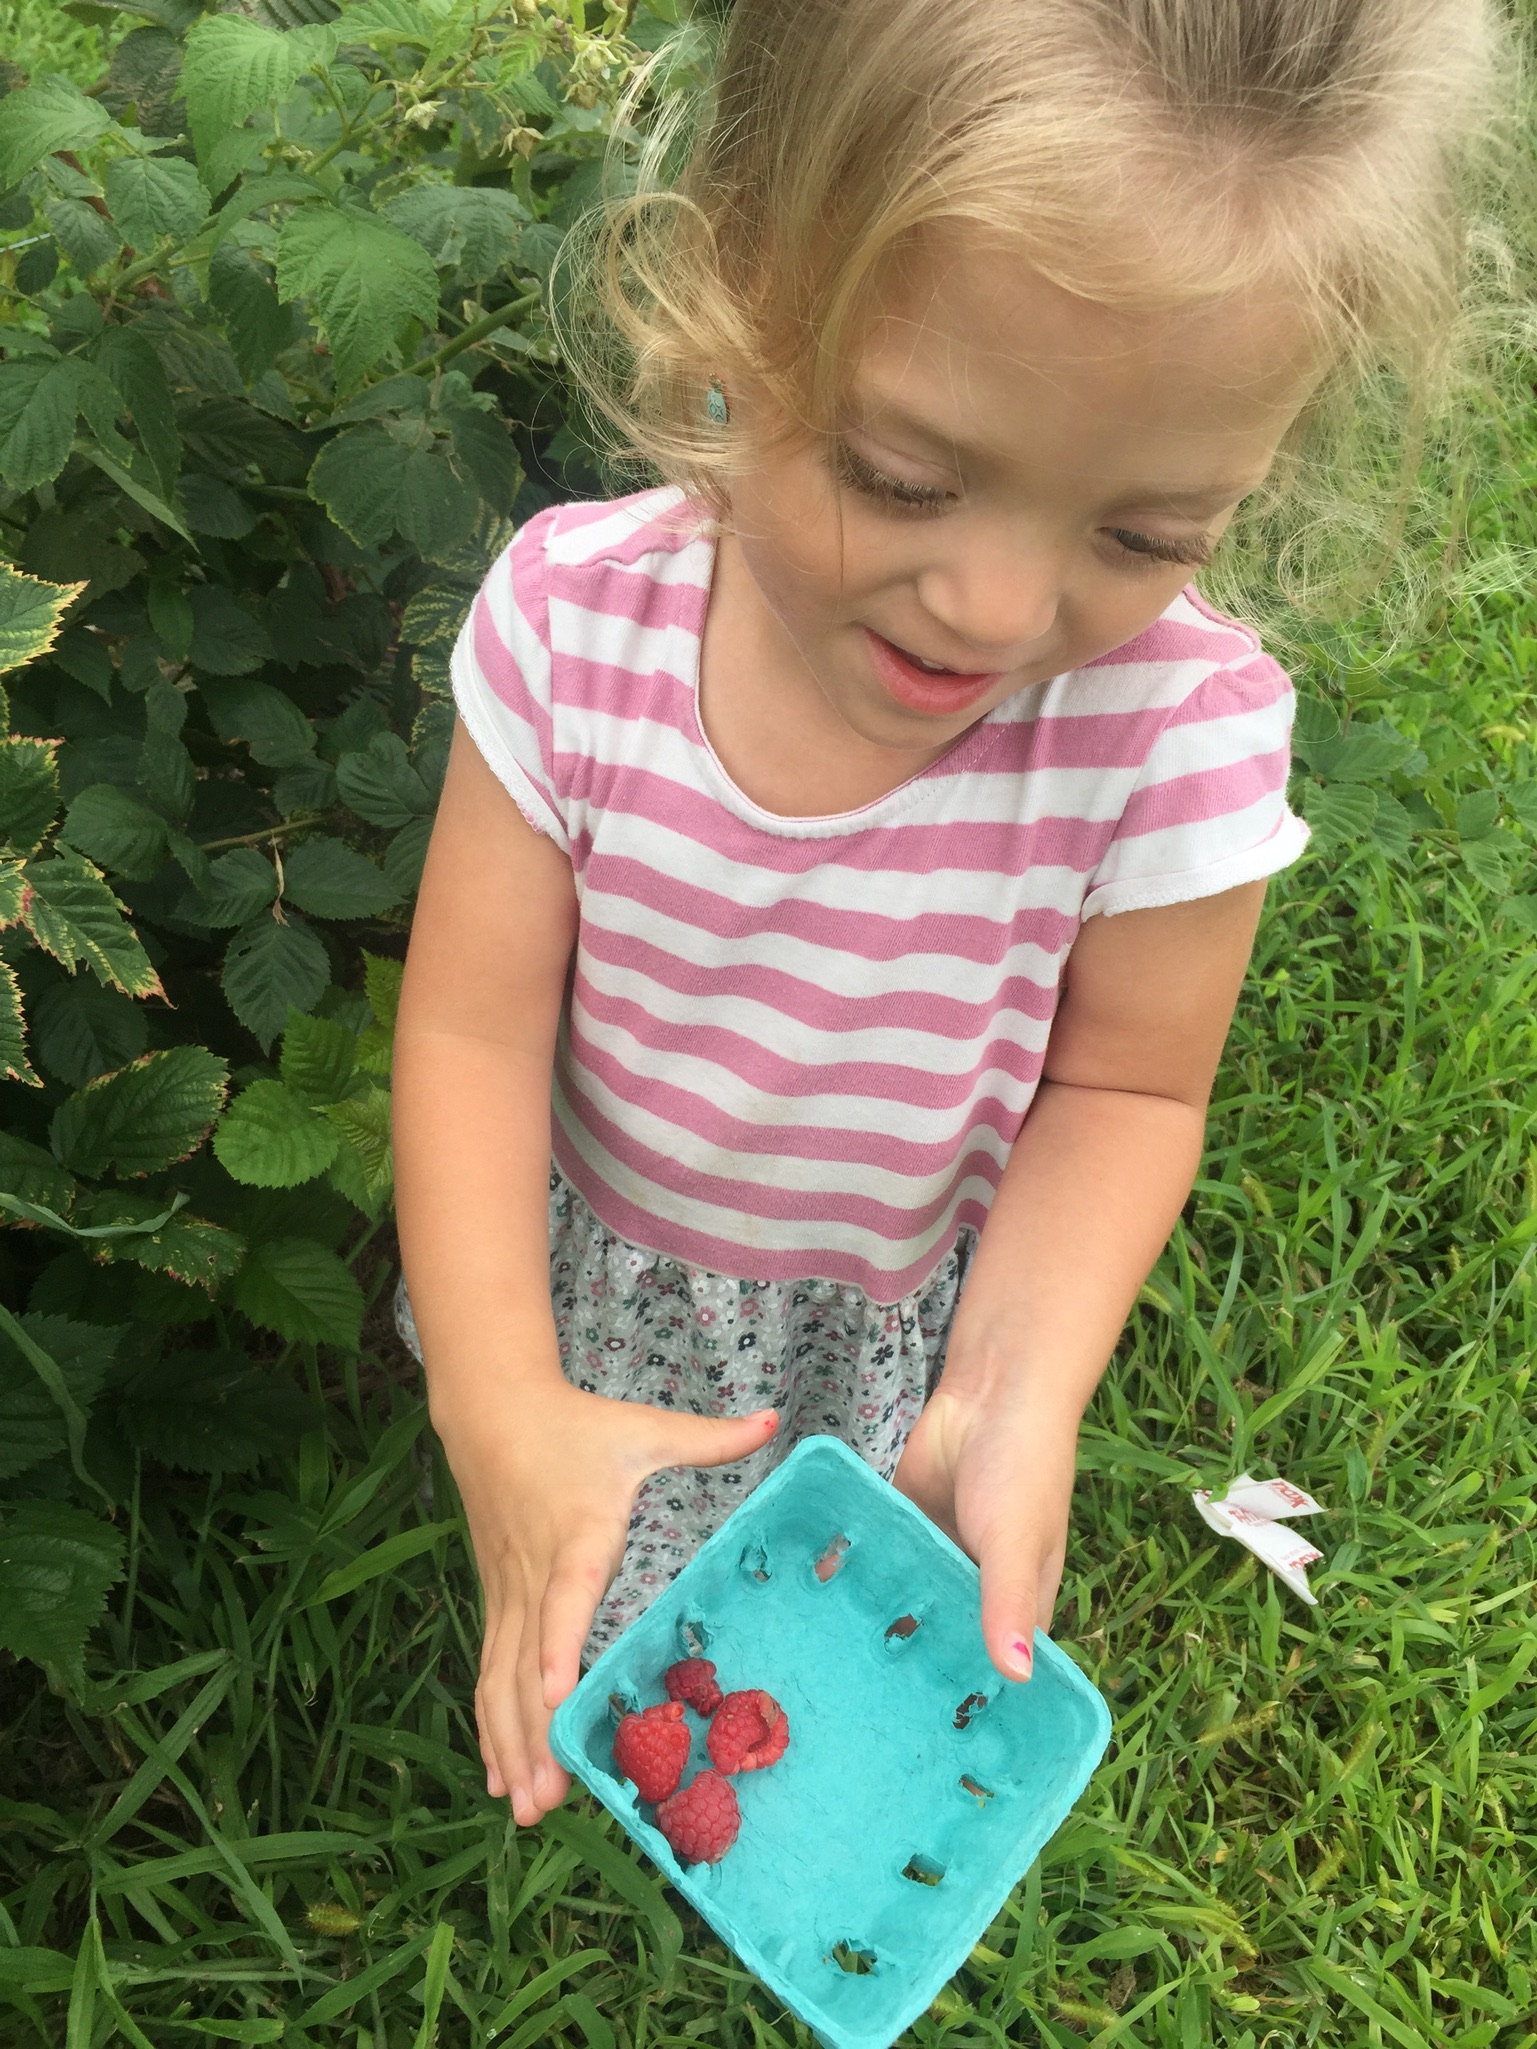 I took the next week off and Lucie and I went on adventures throughout the week with our fun housemates, Coach D's Family, Abigail and Ezekiel. Our first adventure was a small berry farm where we picked sweet raspberries and perfect blackberries.